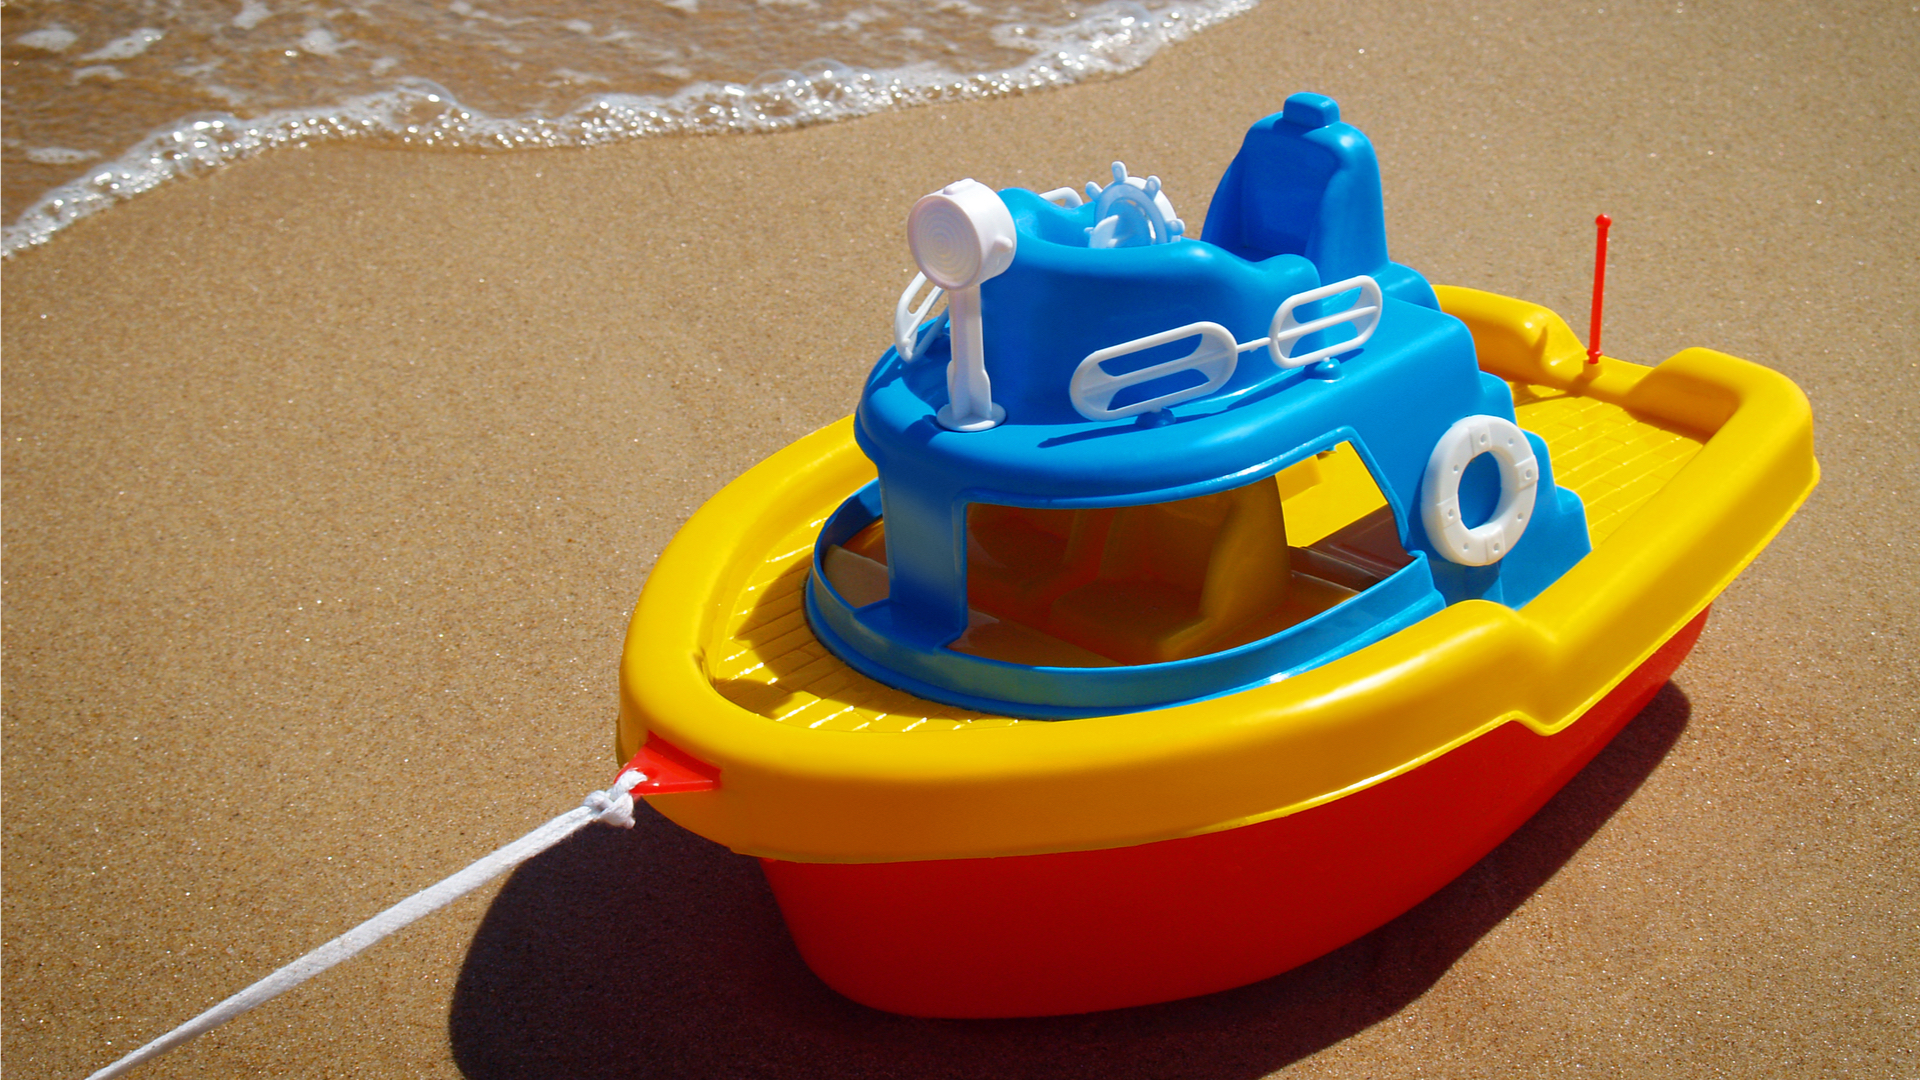 Photo of toy boat on the beach